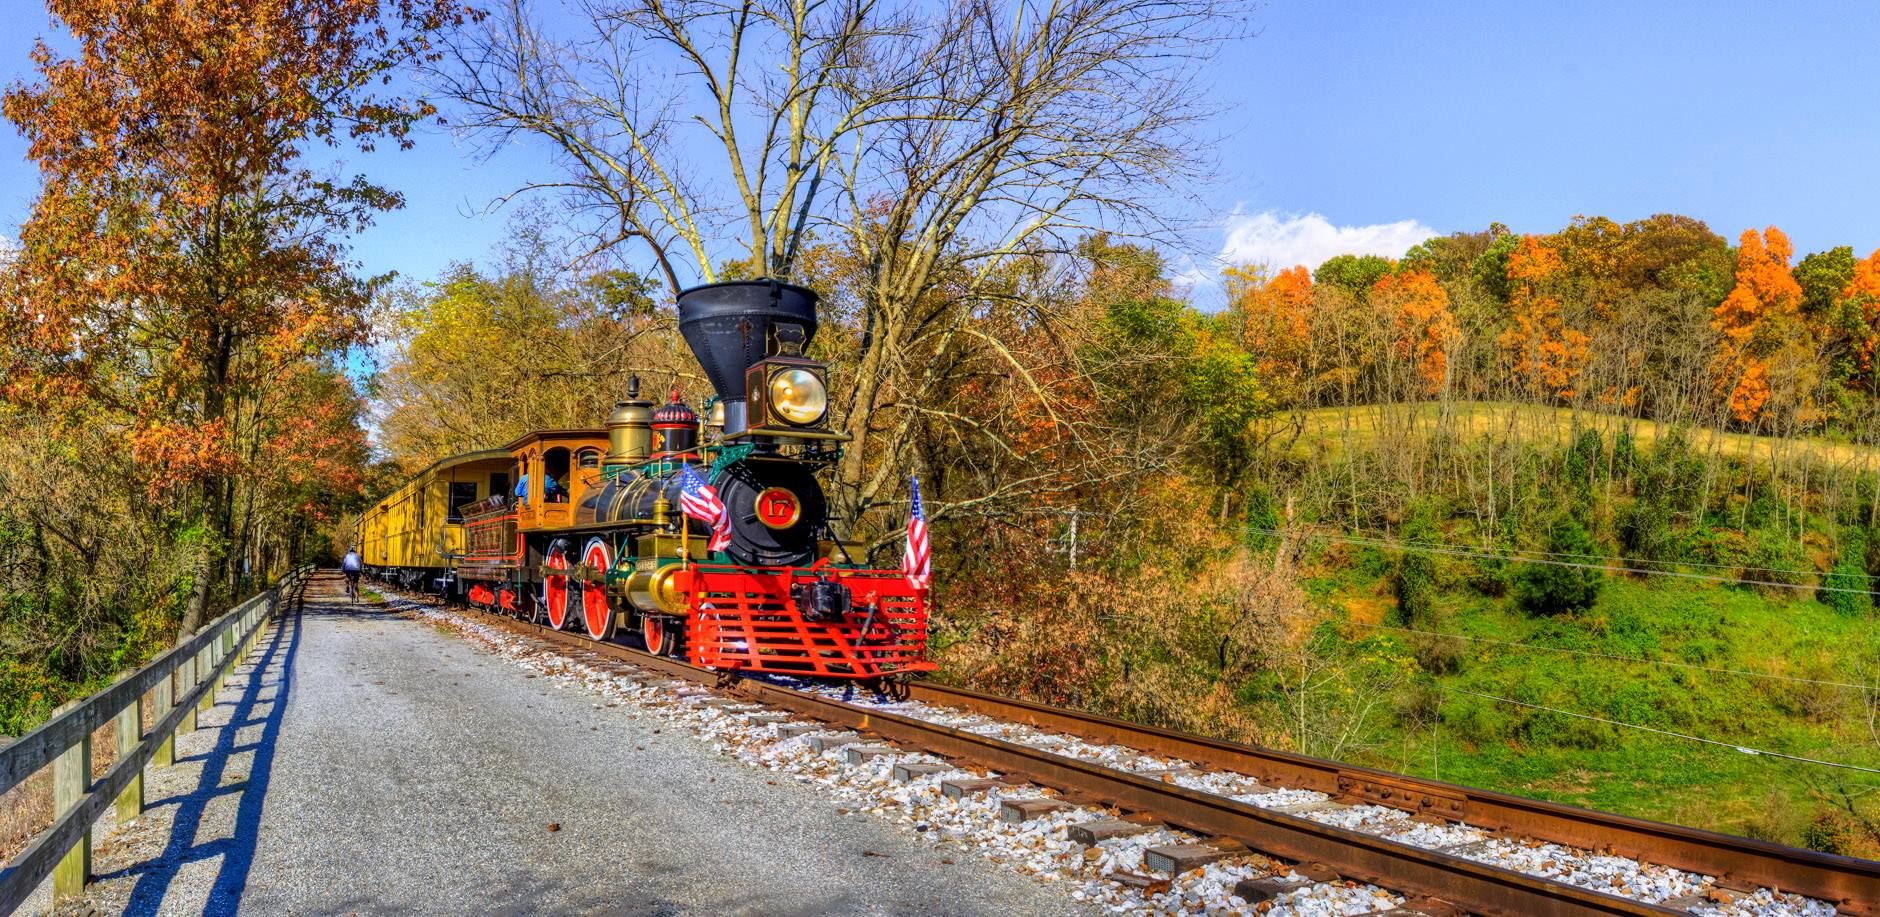 View the colors of fall from a replica Civil War-era steam engine. Photo by John Gensor.